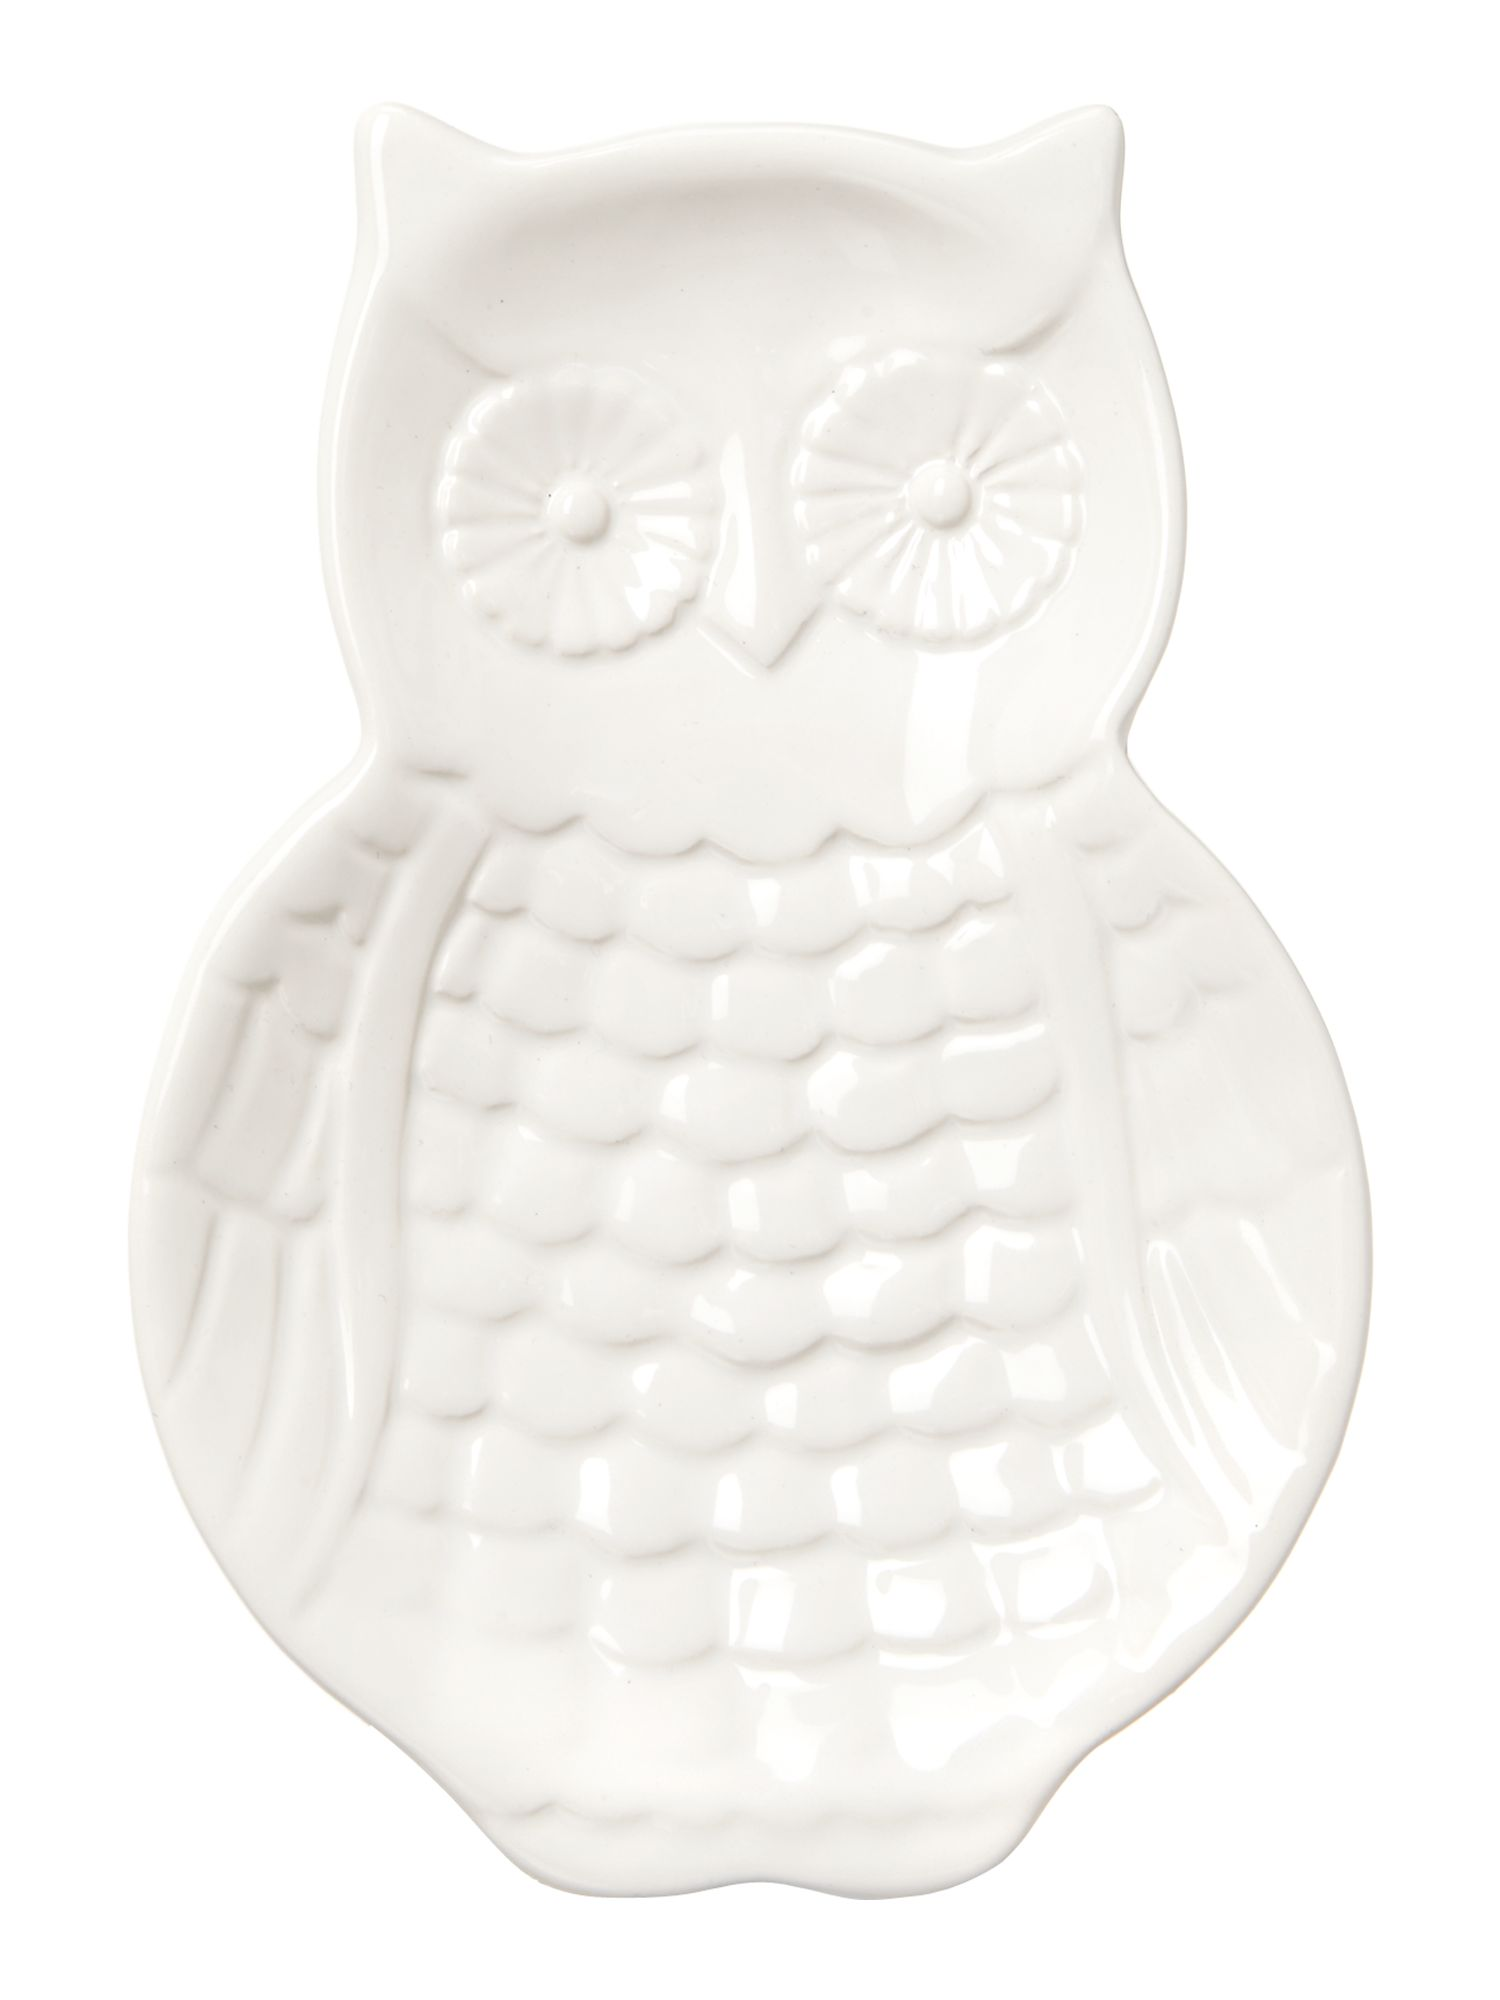 Owl spoon rest